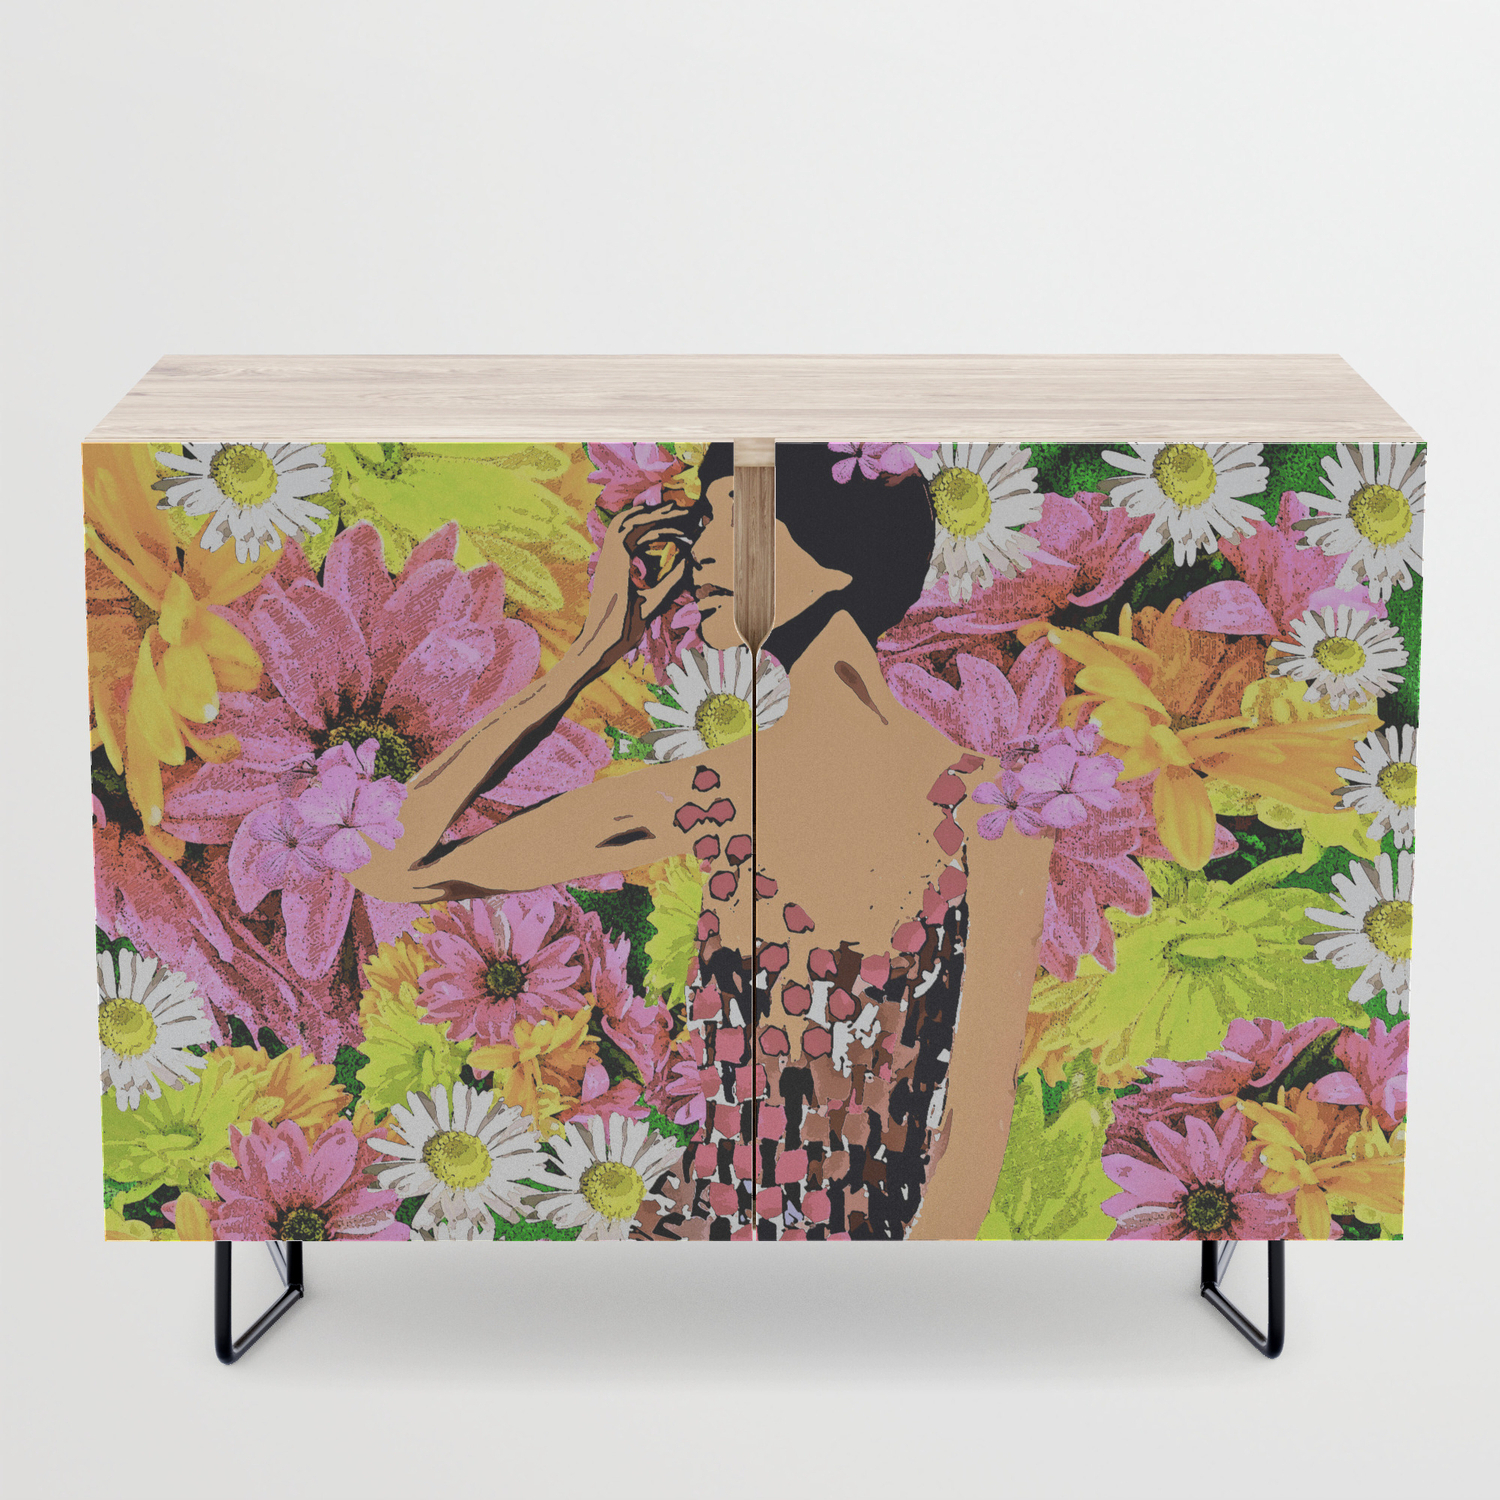 Luna Spring Time Beauty Woman Flower Child Credenza Intended For Floral Beauty Credenzas (View 18 of 20)